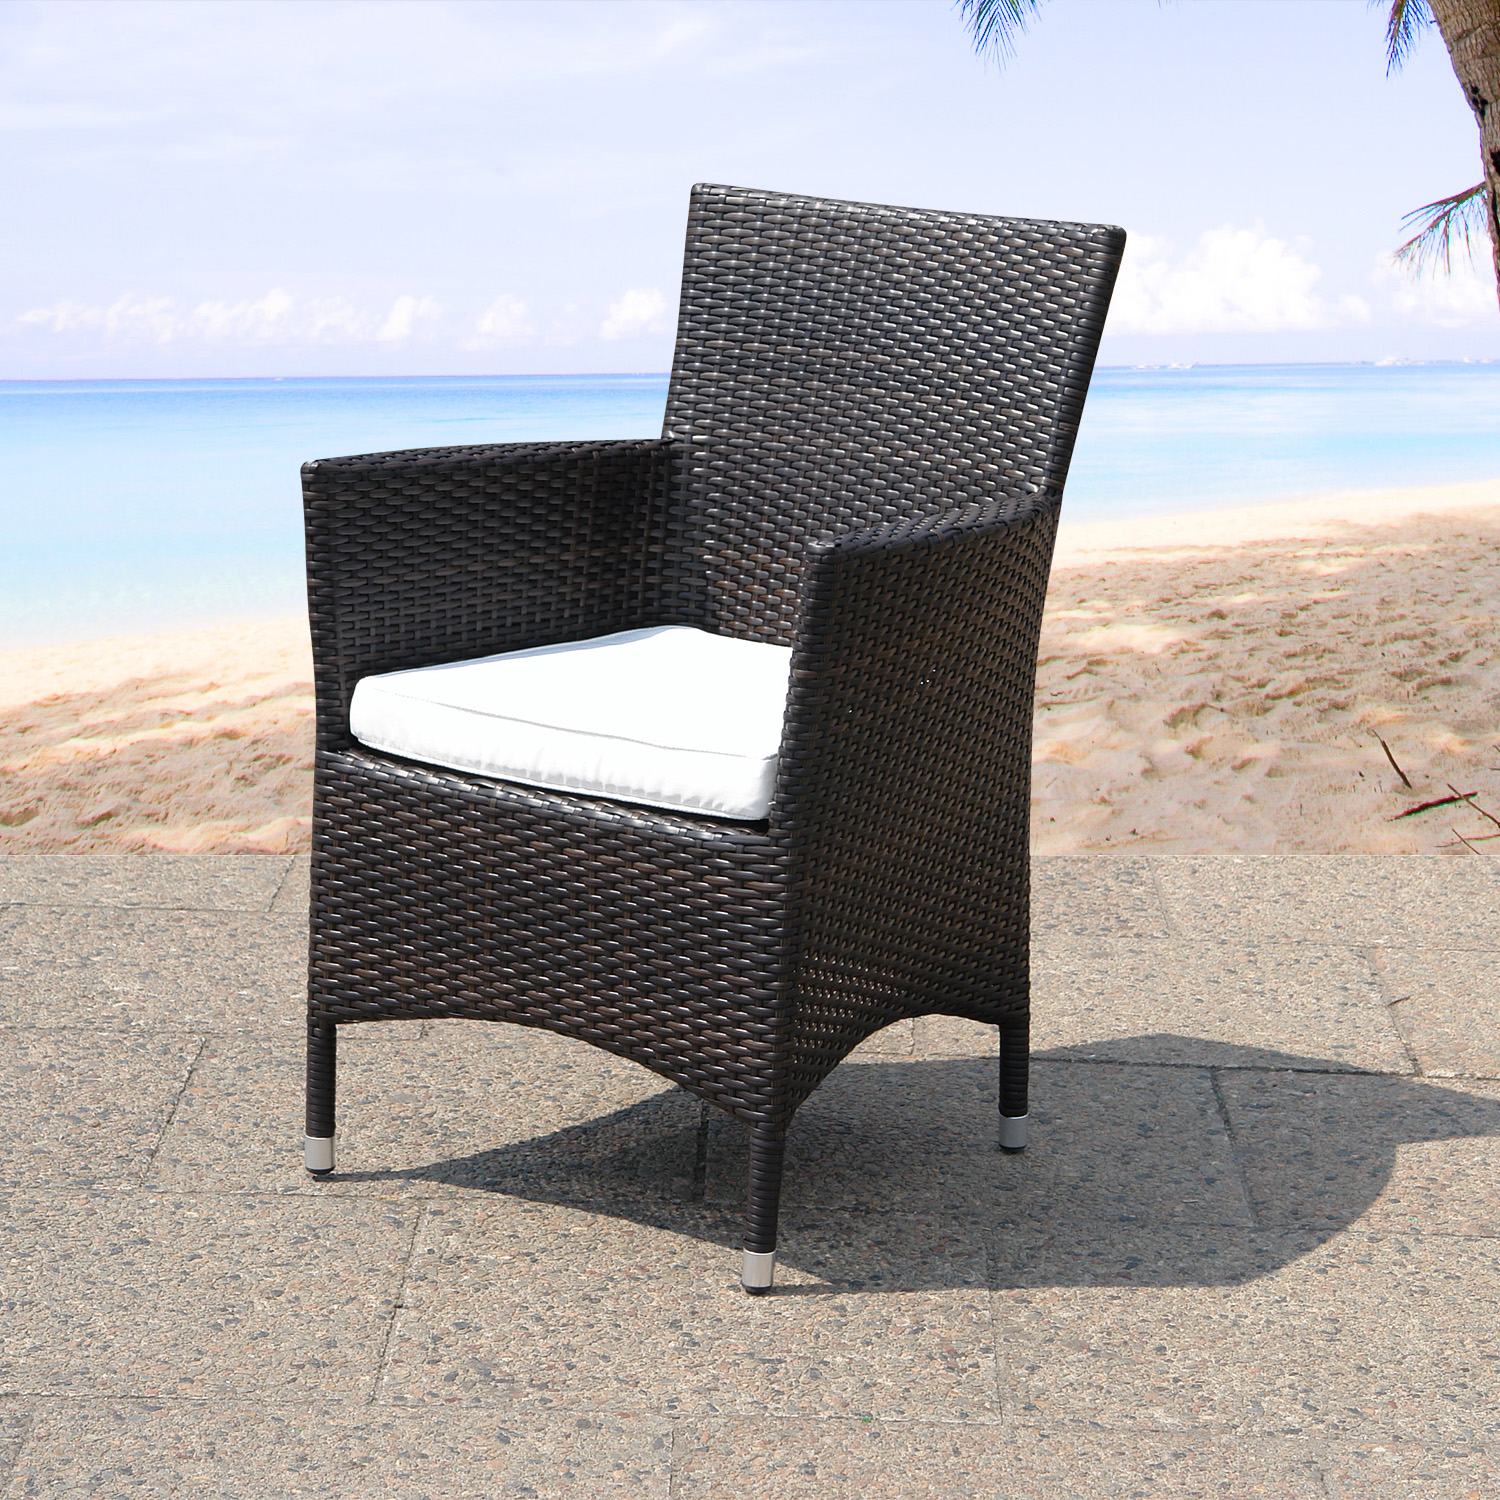 Wicker Patio Chair Garden Dinning Chair Seat Cushion Patio Wicker Italy